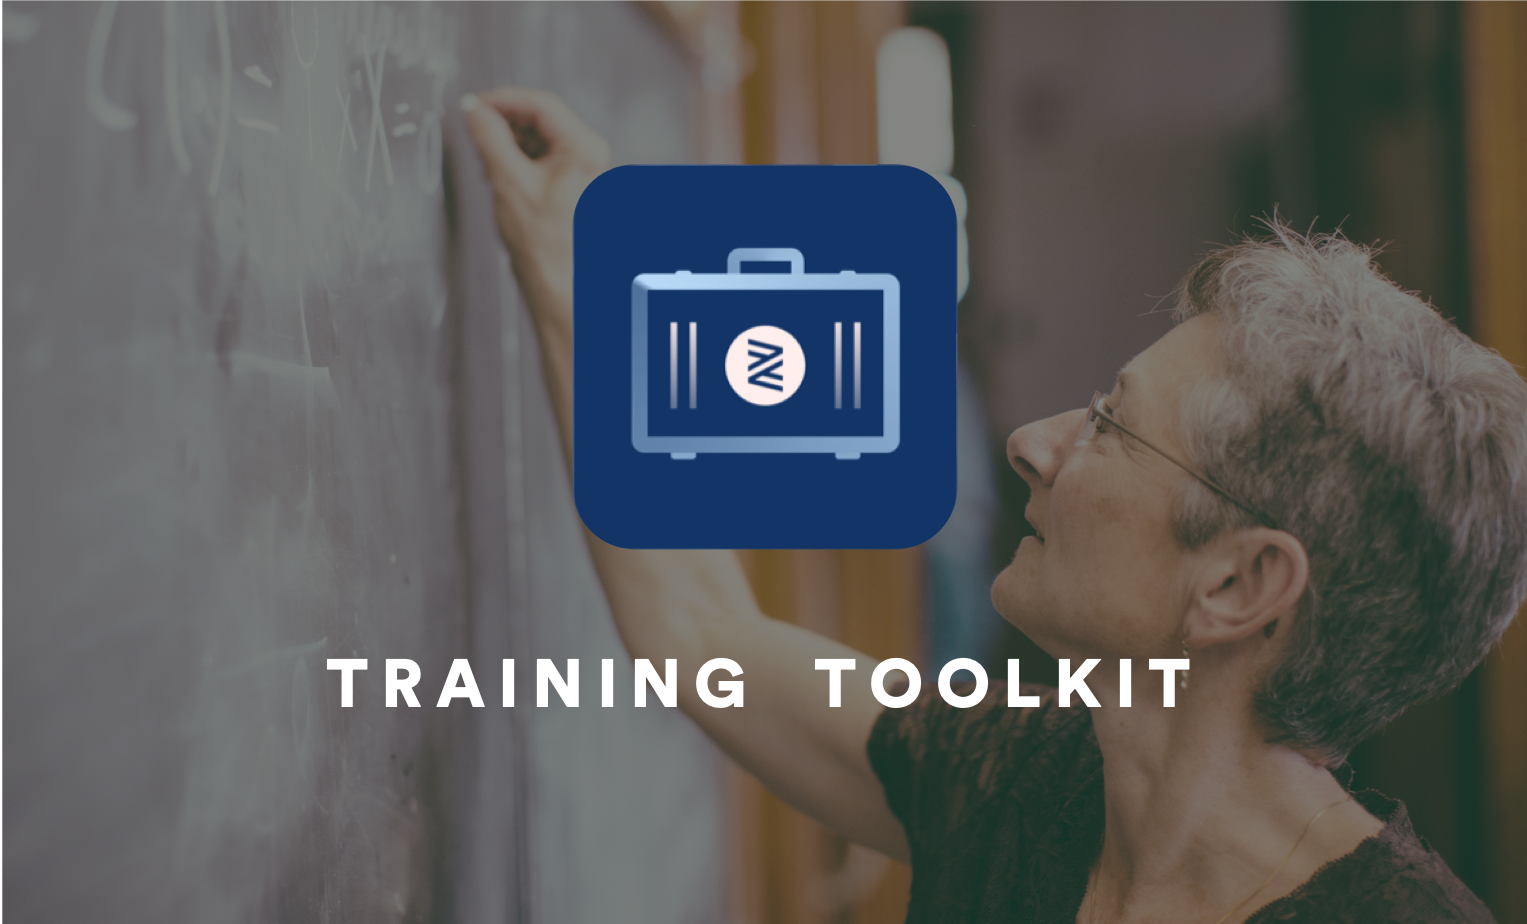 Training Toolkit- Employee